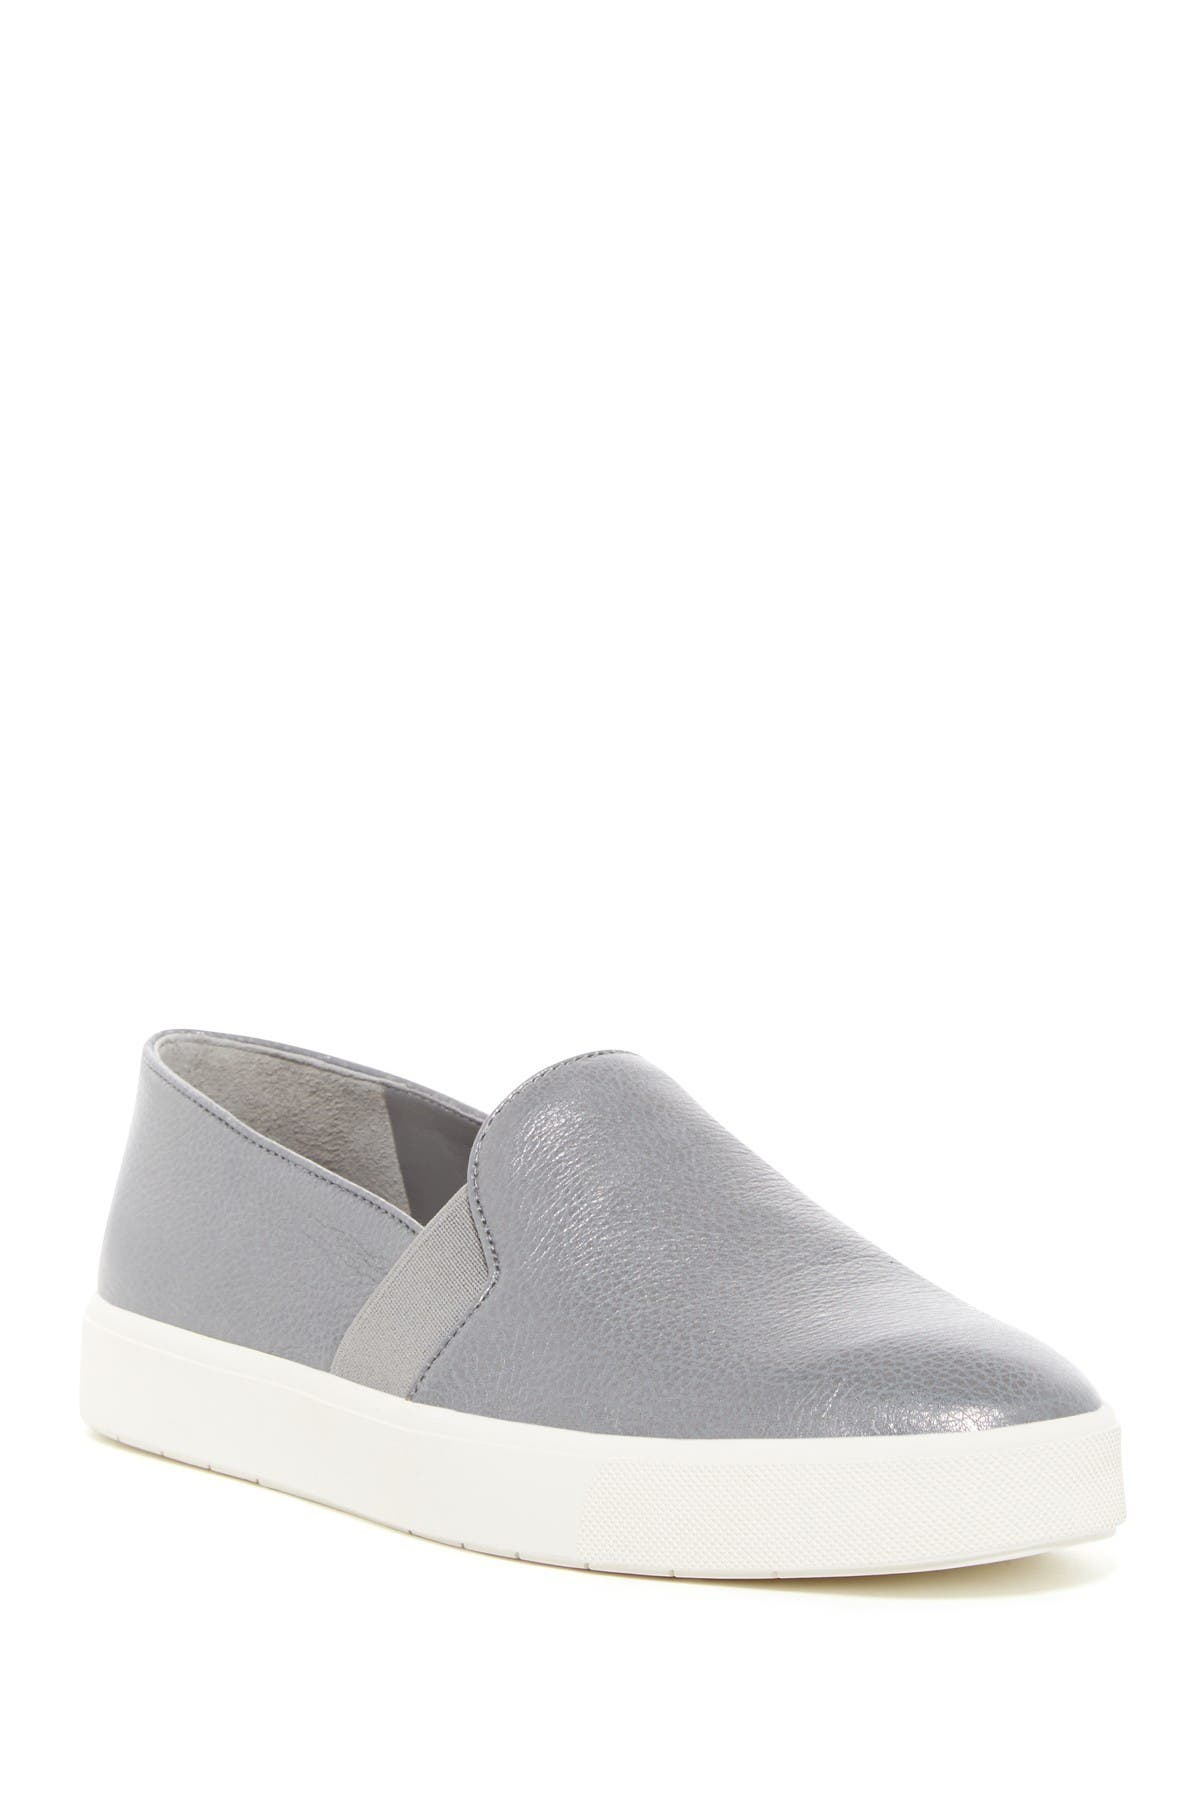 Image of Vince Blair Slip-On Sneaker